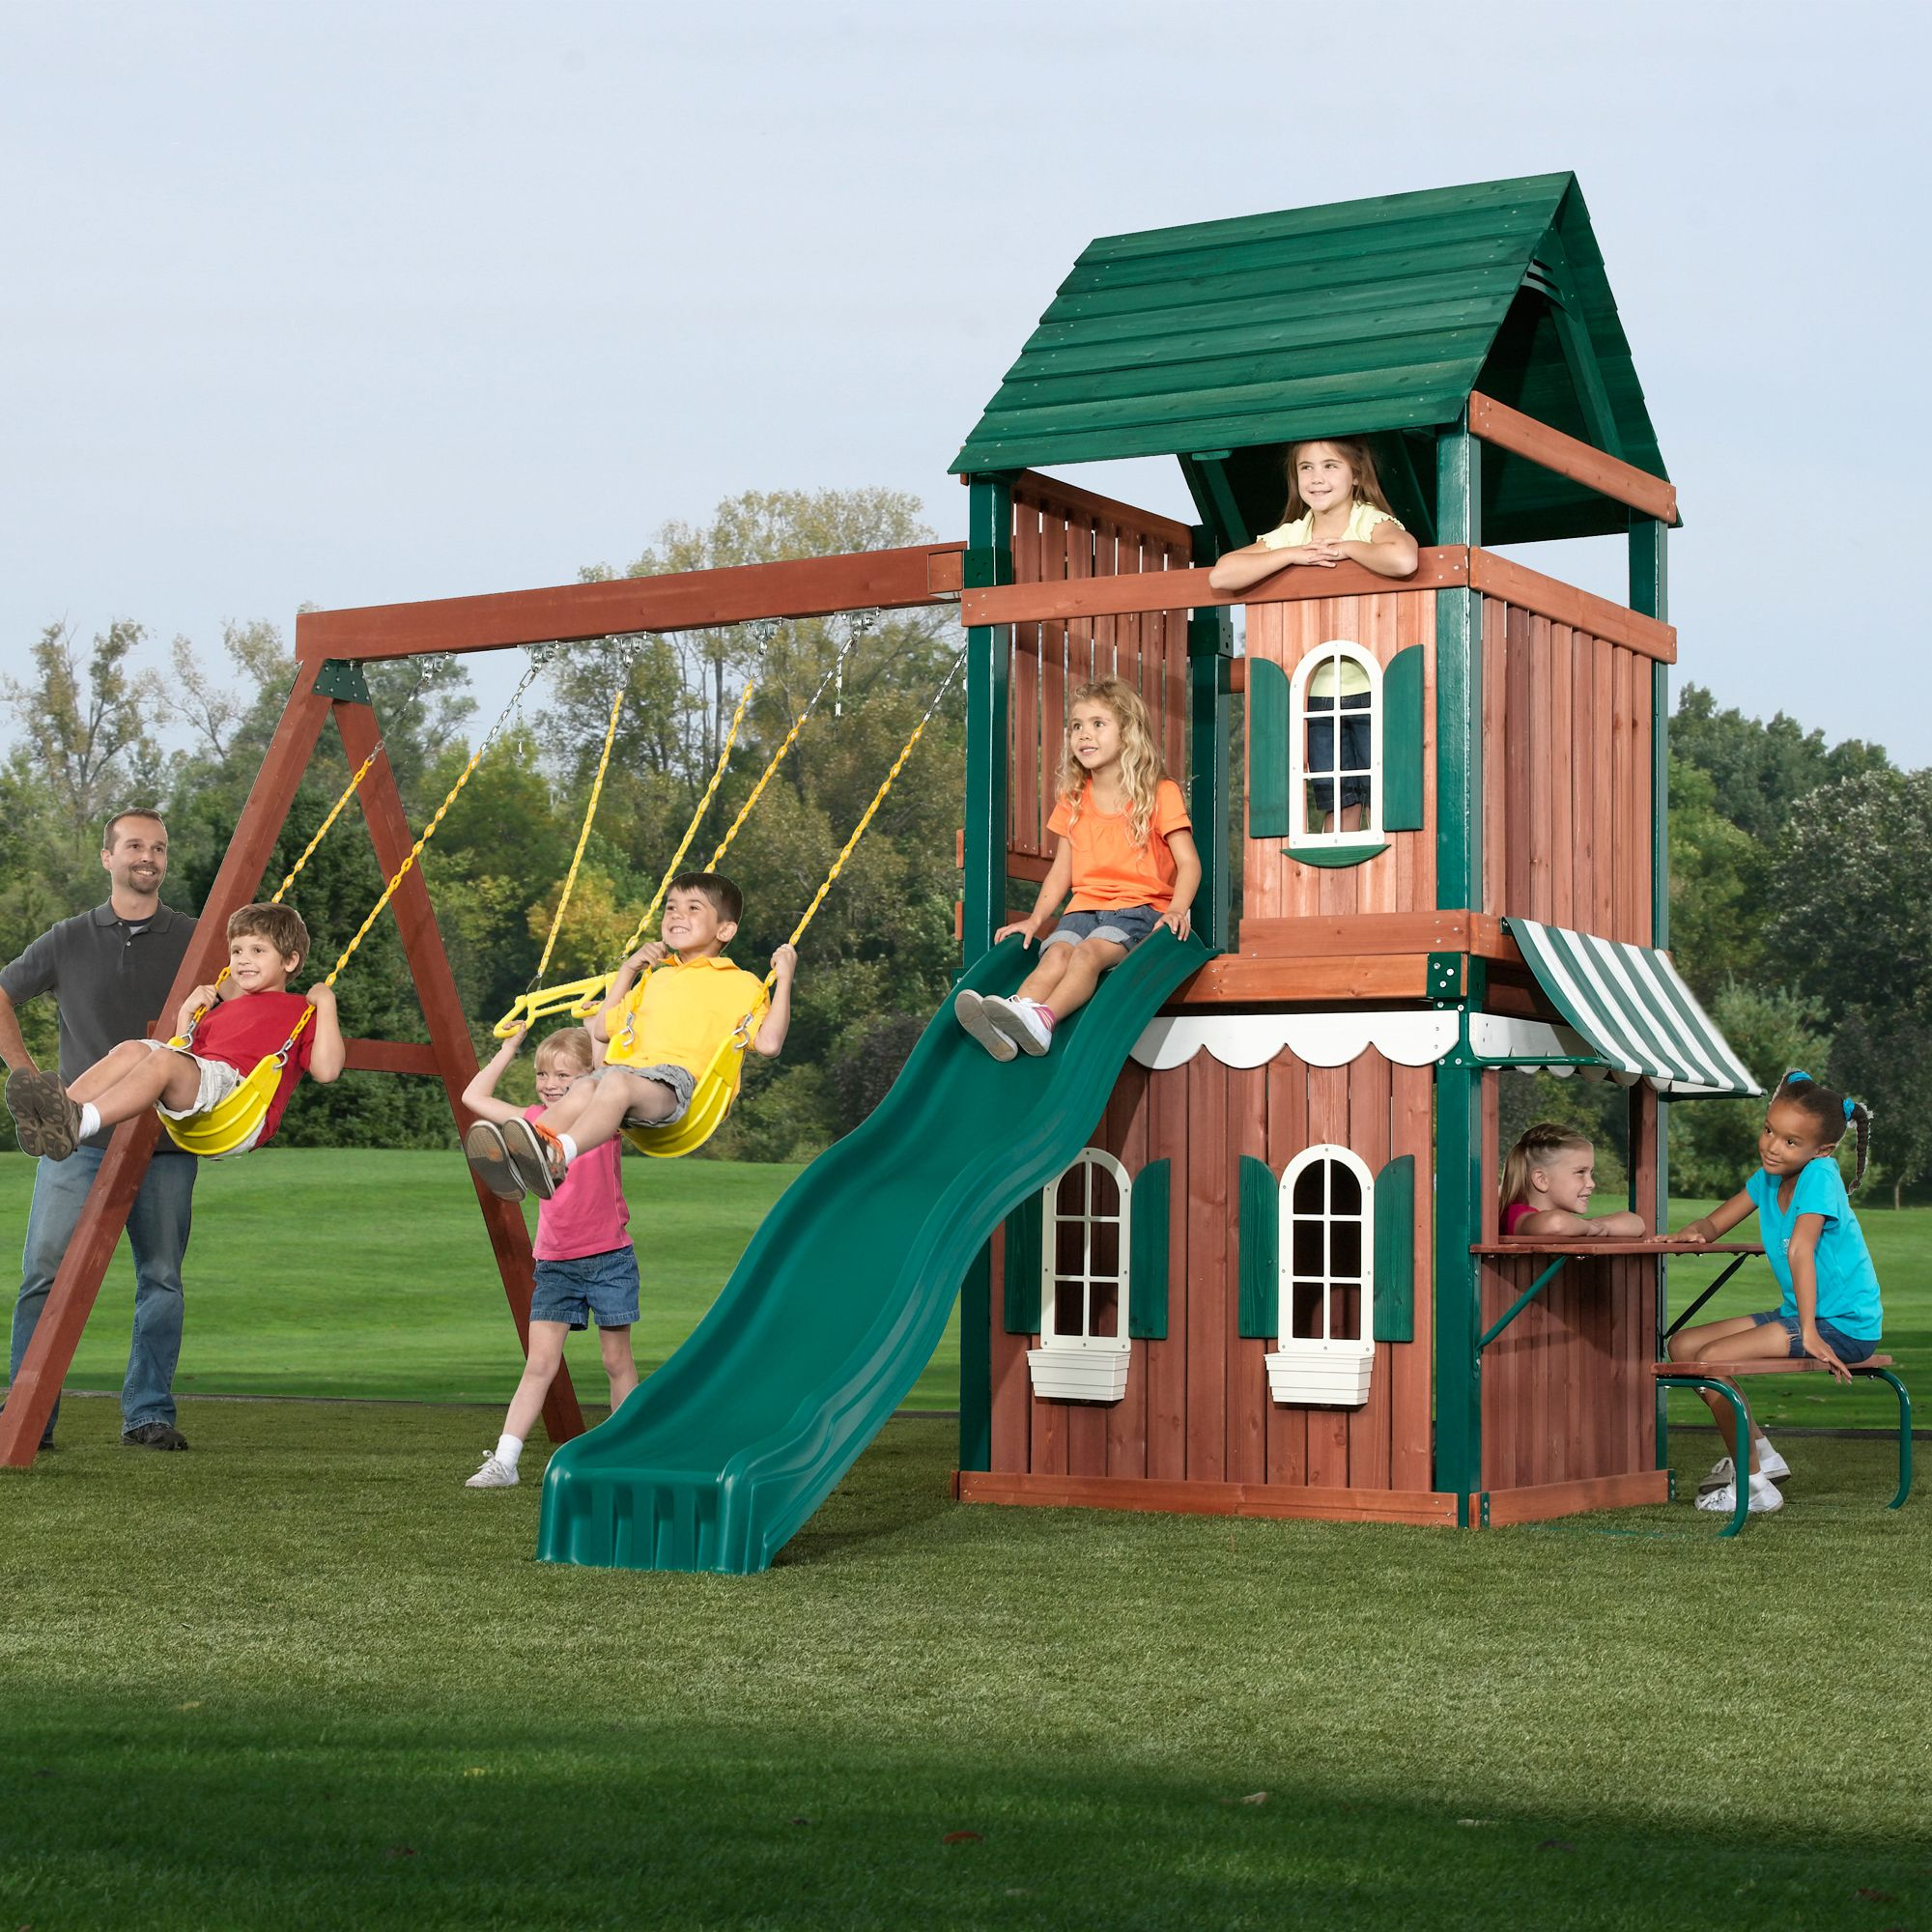 Buitenspeelgoed Schoolplein Swing N Slide Newport News Play Set Price Includes Shipping